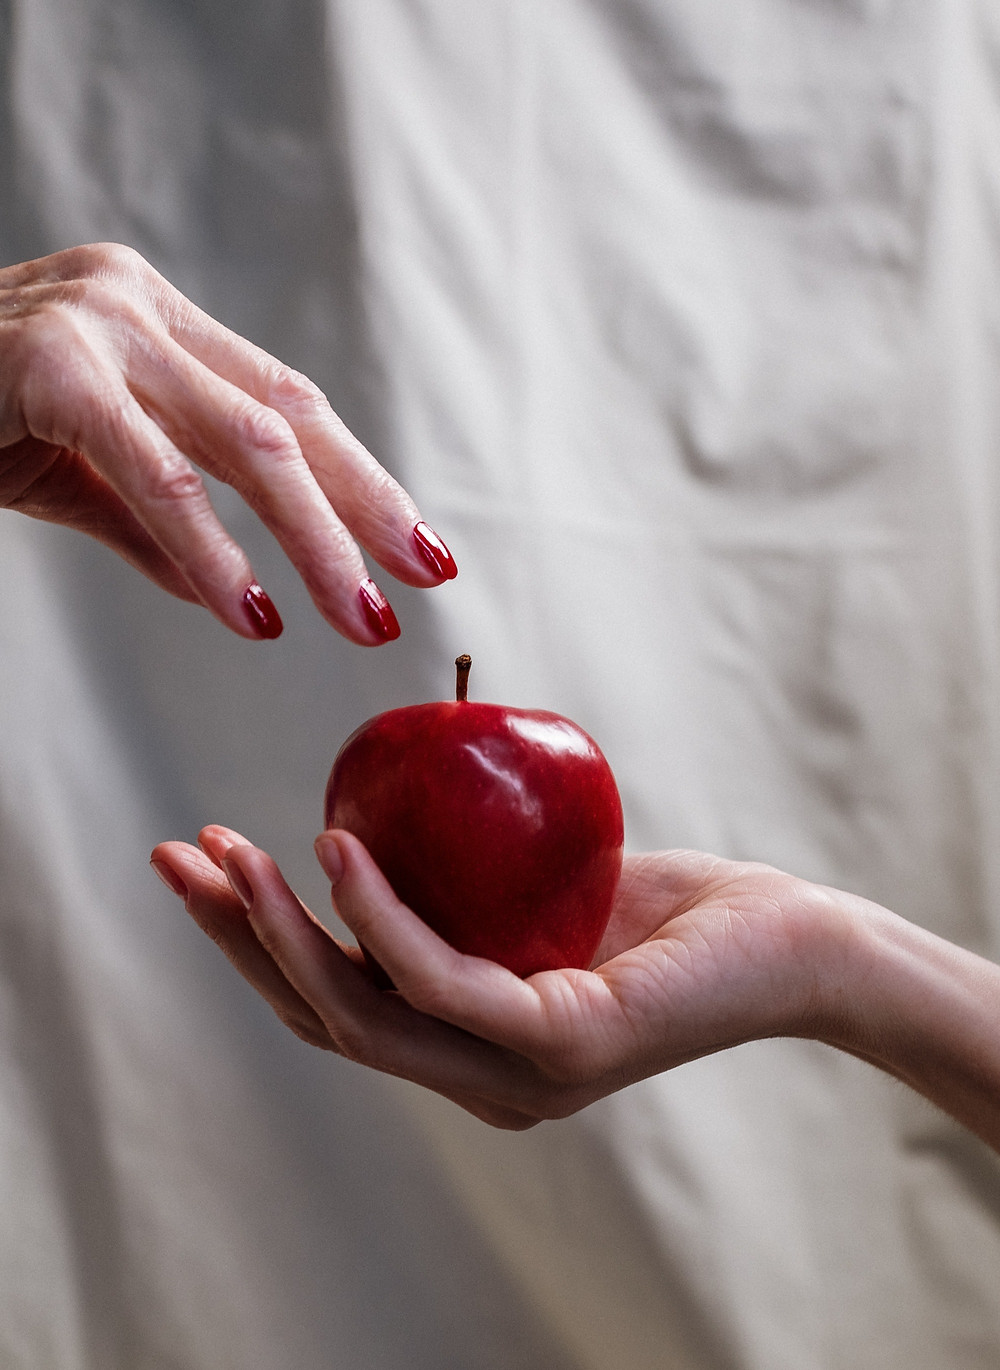 Fairy Tale Writing Prompts - Evil Queen's Poisoned Apple